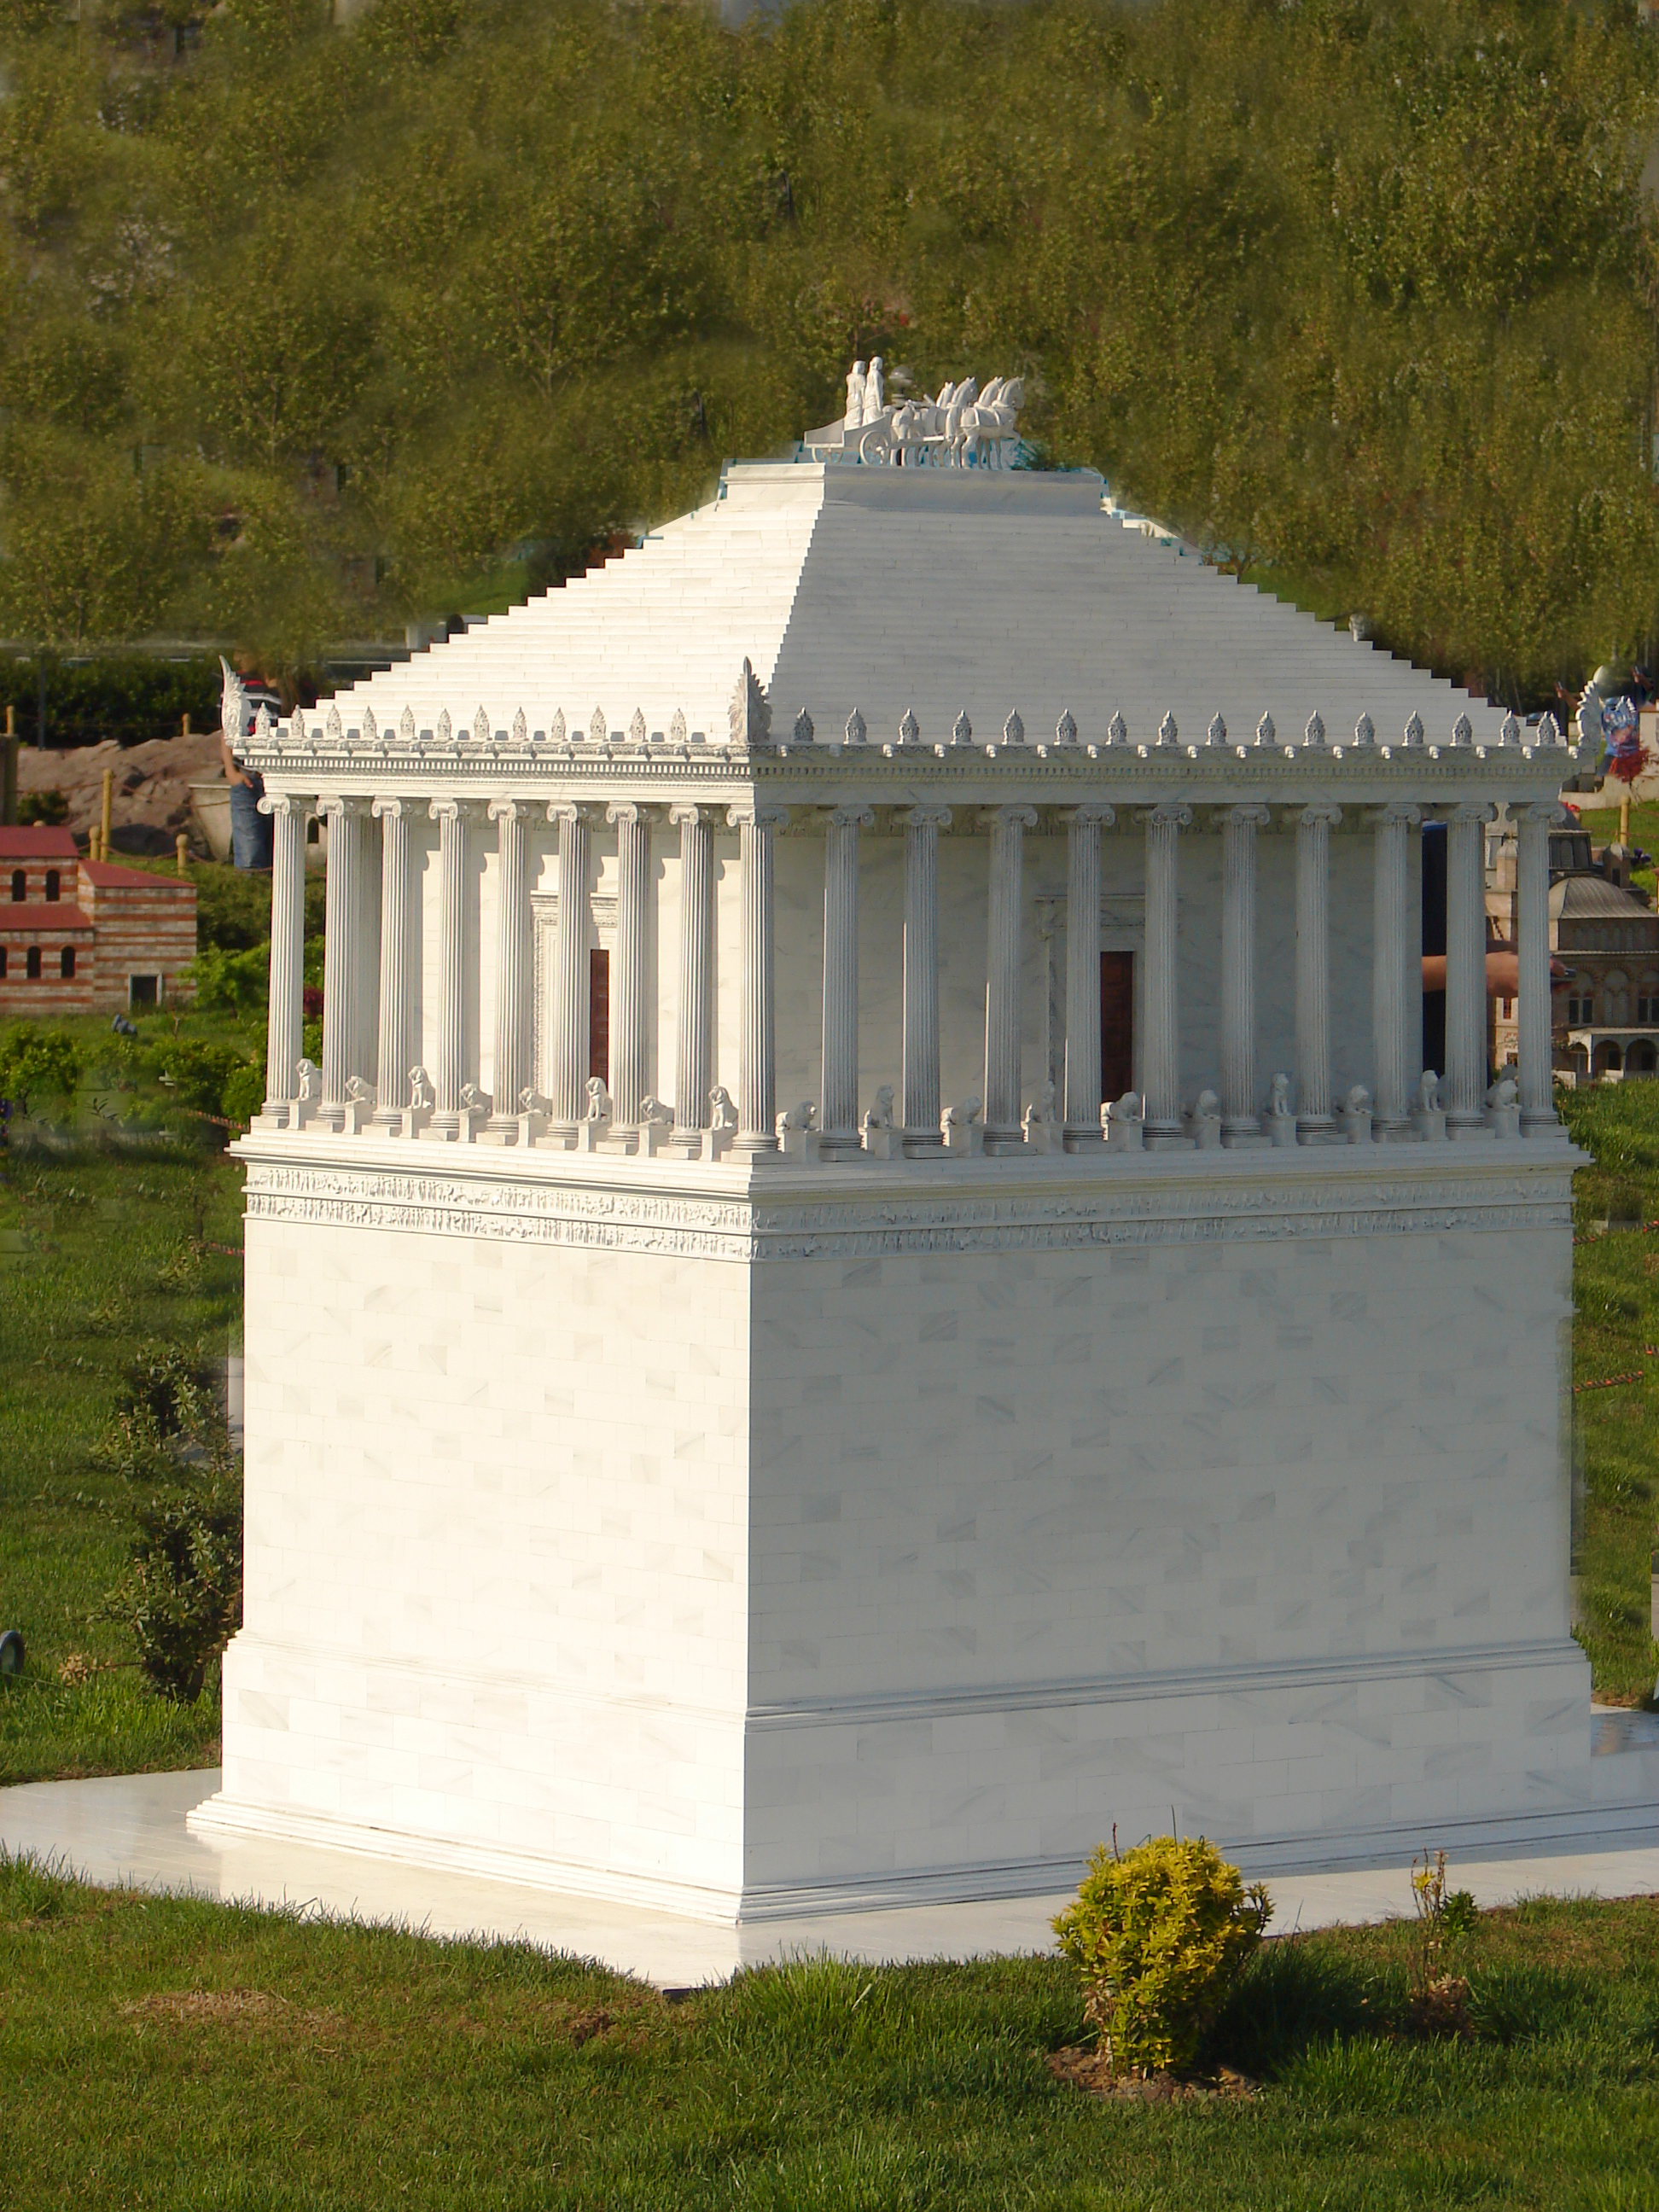 http://upload.wikimedia.org/wikipedia/commons/d/d2/The_maussolleion_model_dsc02711-miniaturk_nevit.jpg